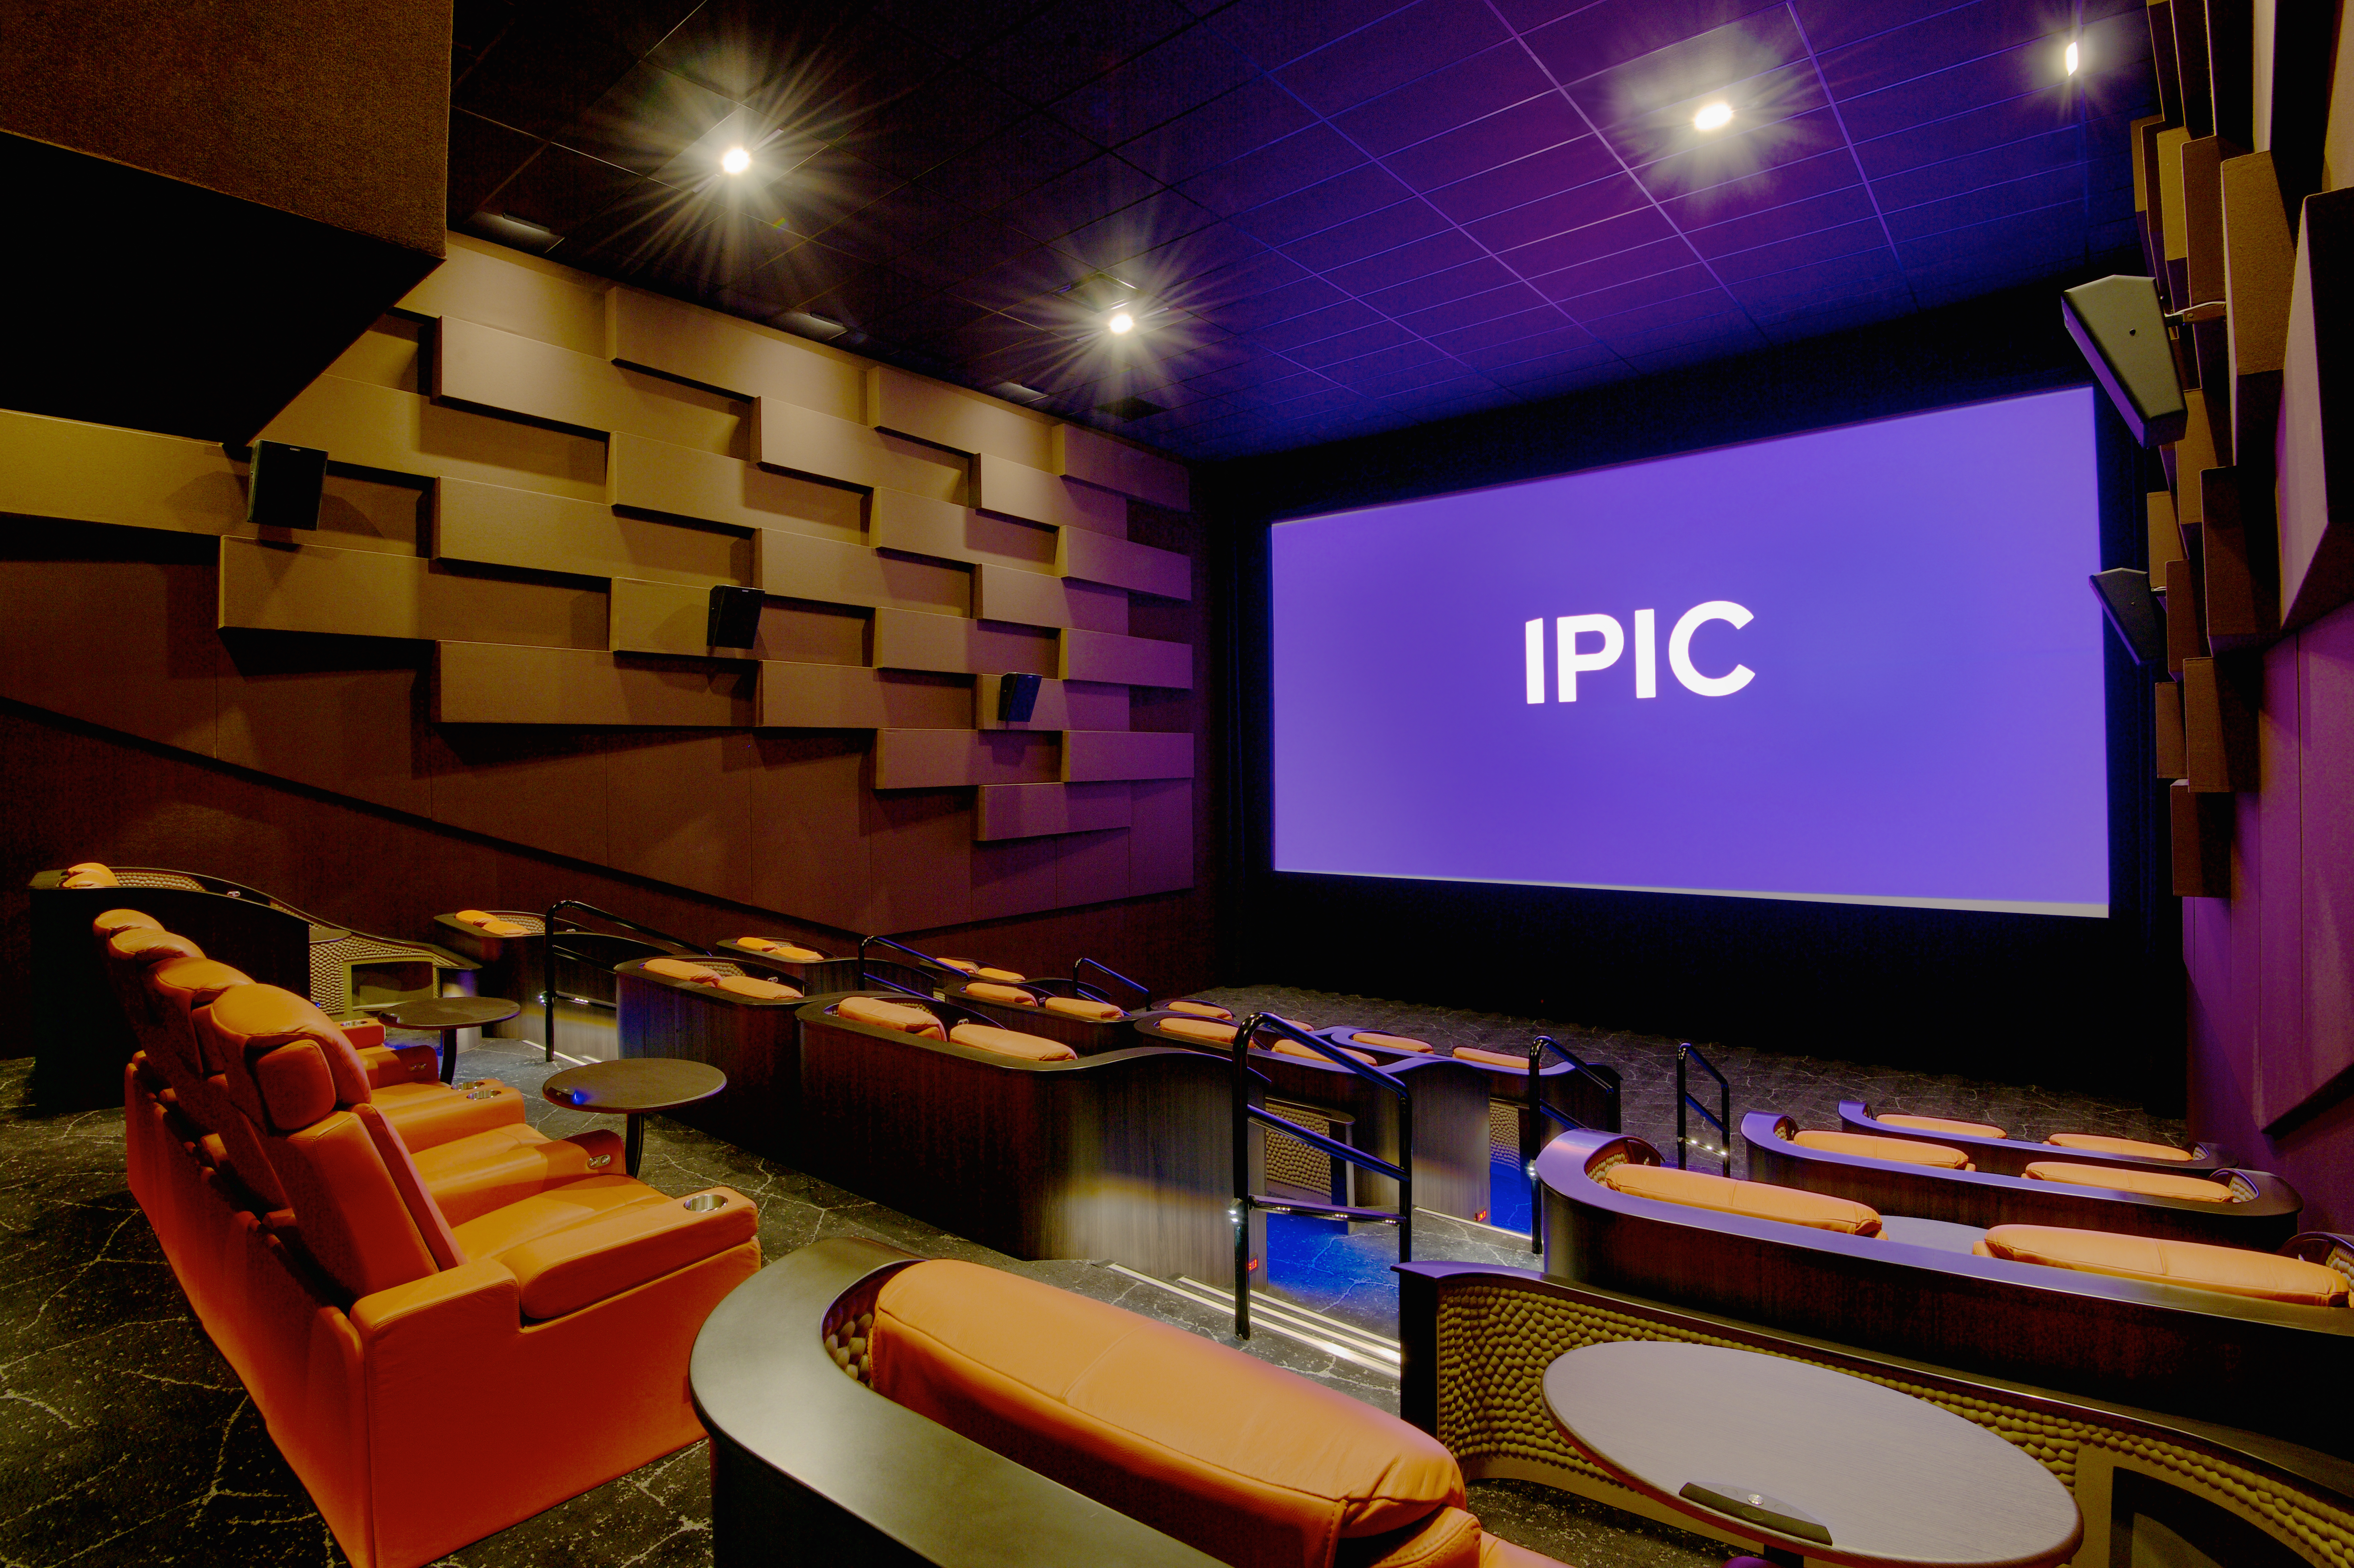 A small theatre at iPic in Atlanta with table seating and pod seating